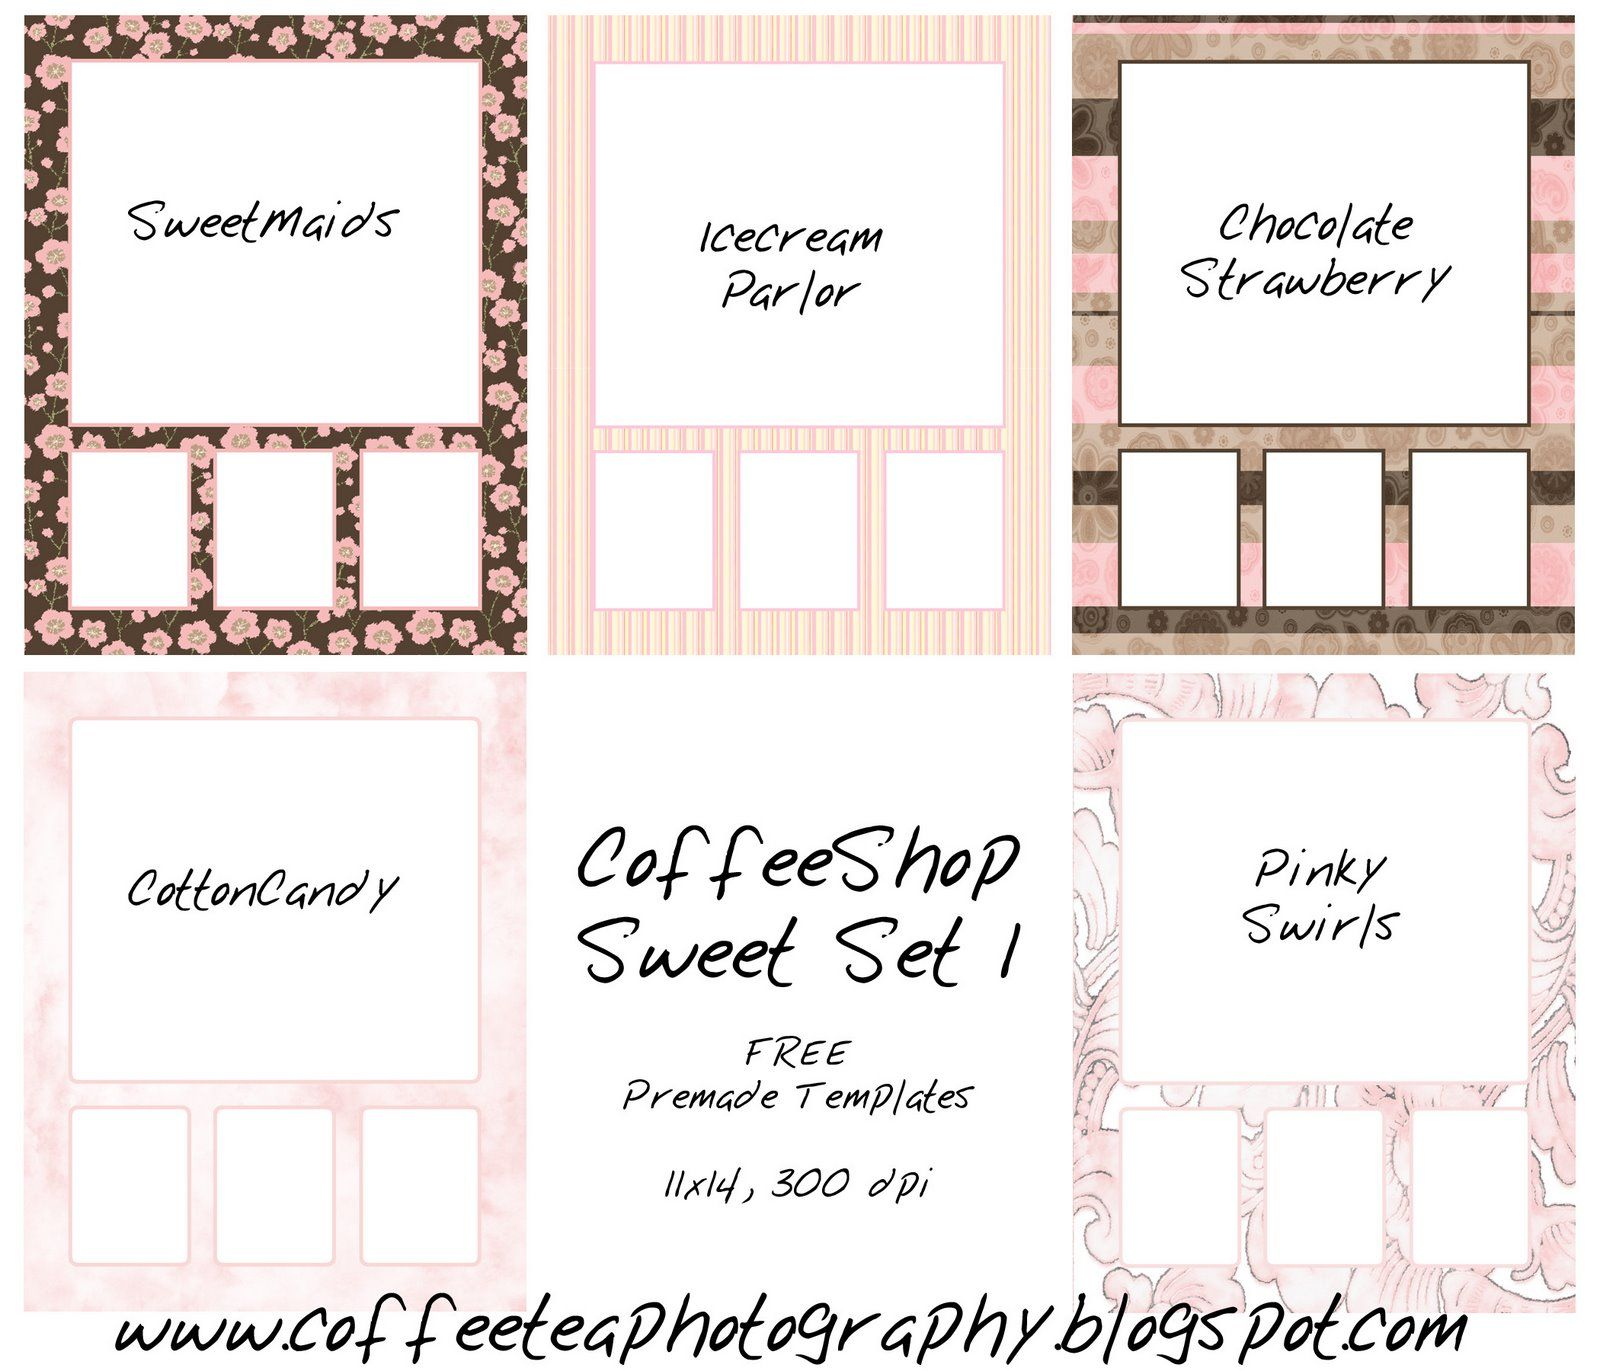 The Coffeeshop Blog Storyboards And Frames Free Templates Plus